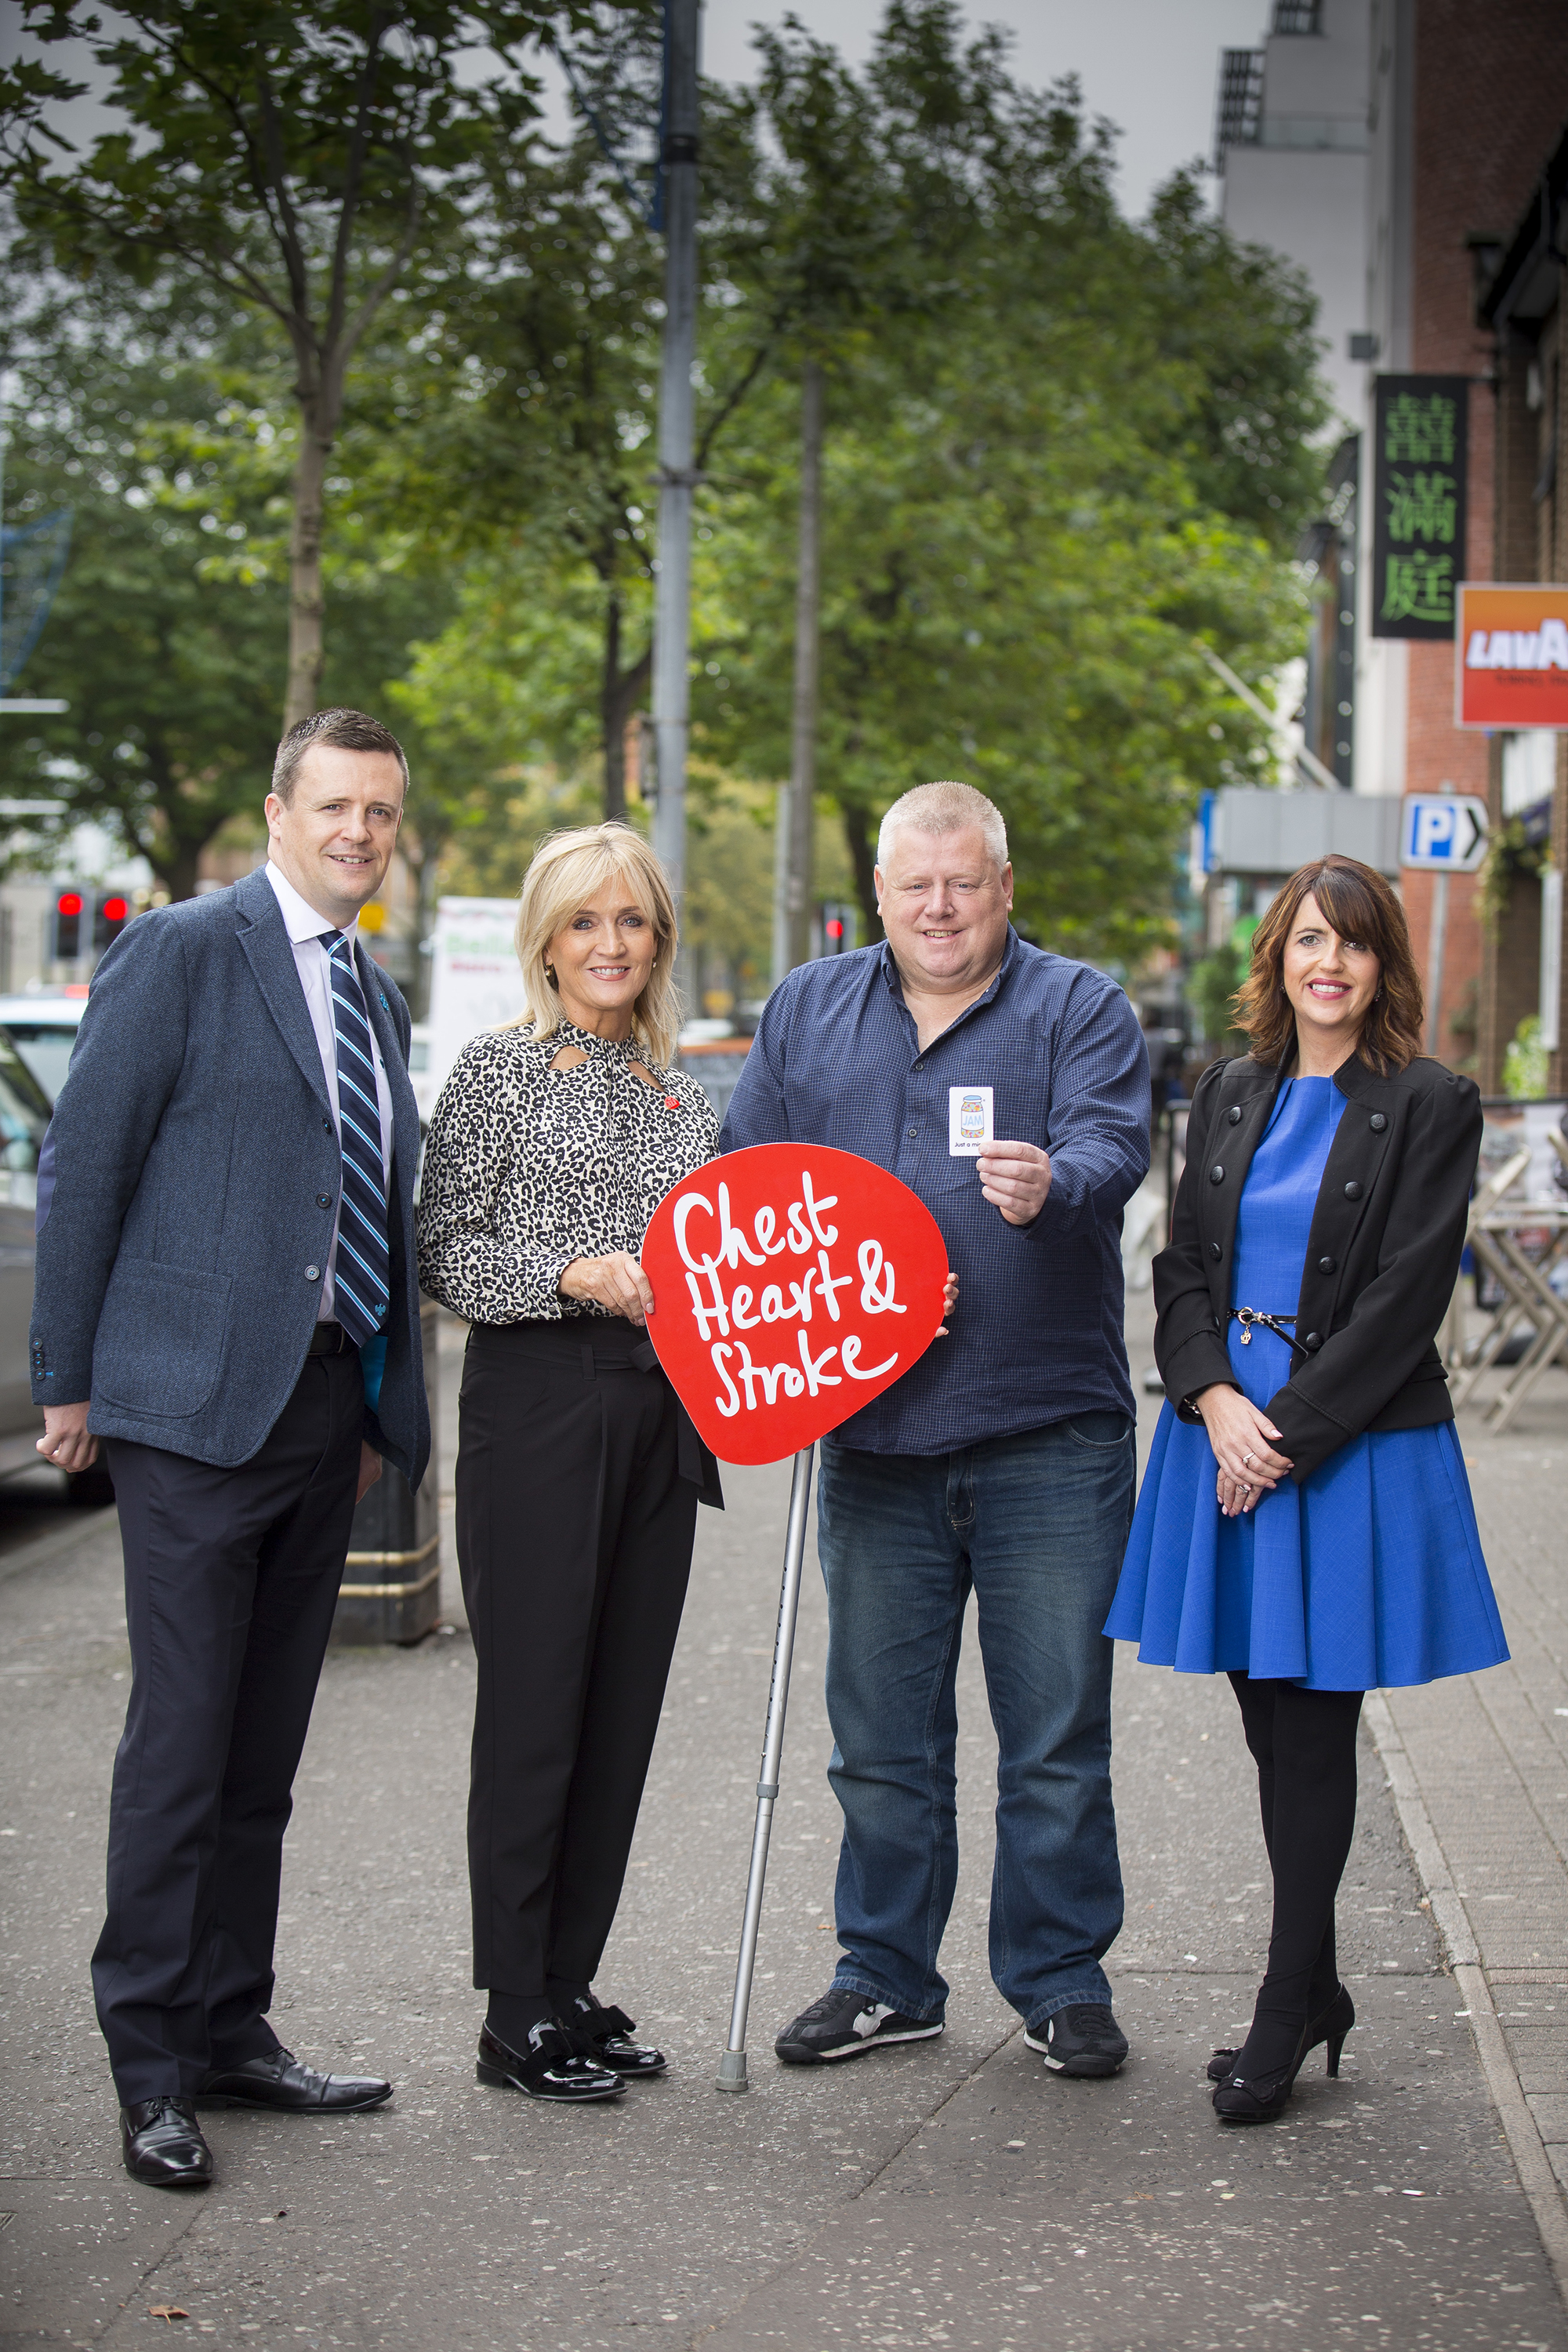 NOW Group teams up with Northern Ireland Chest Heart & Stroke